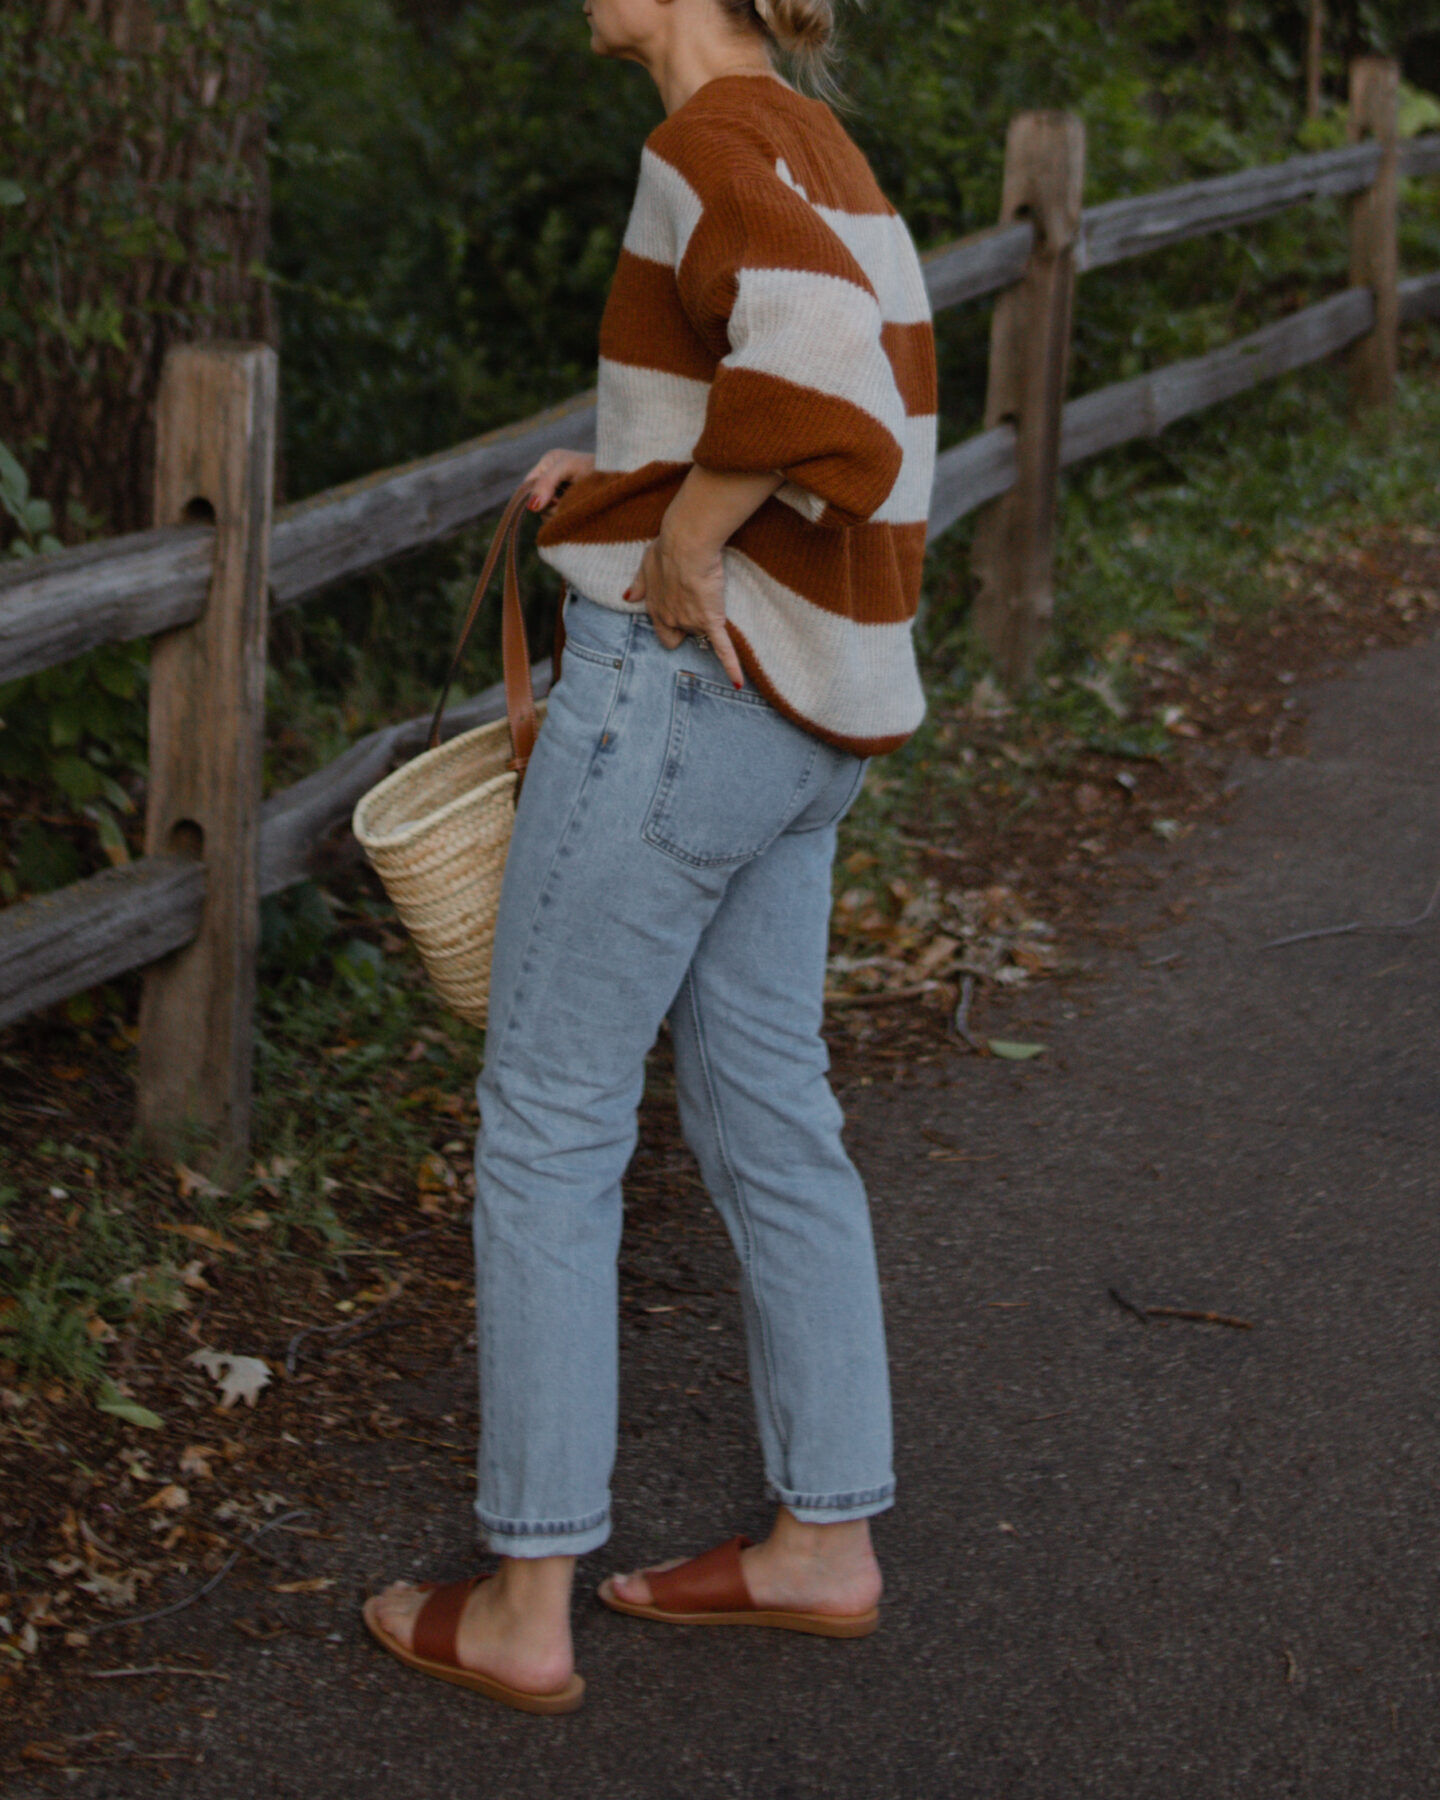 Karin Emily wears the Everlane Relaxed Fit Jeans and reviews them in her Everlane Denim Guide